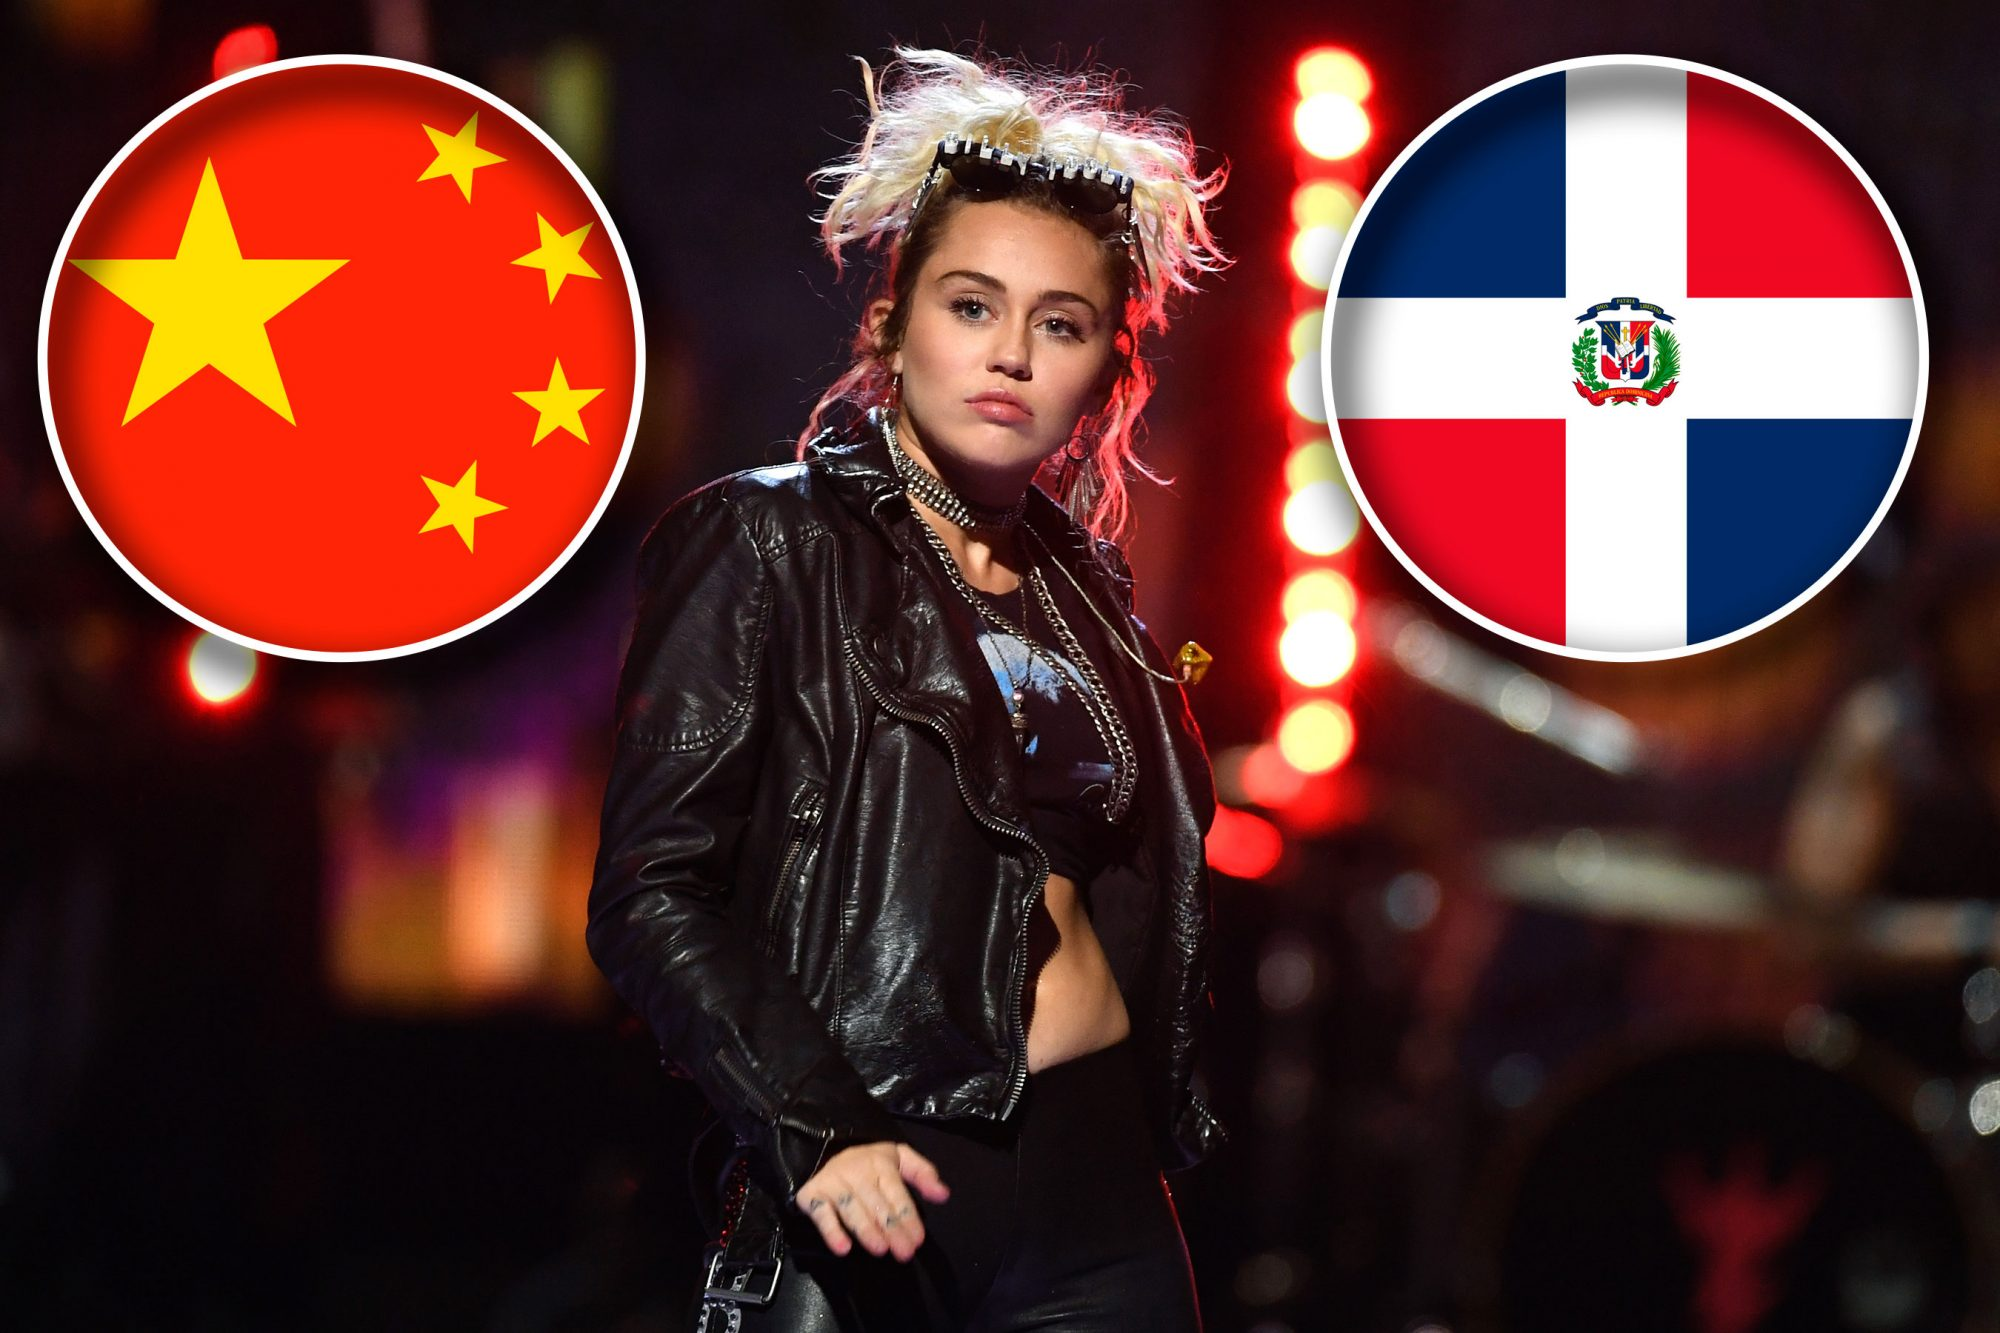 Miley Cyrus (China, Dominican Republic)